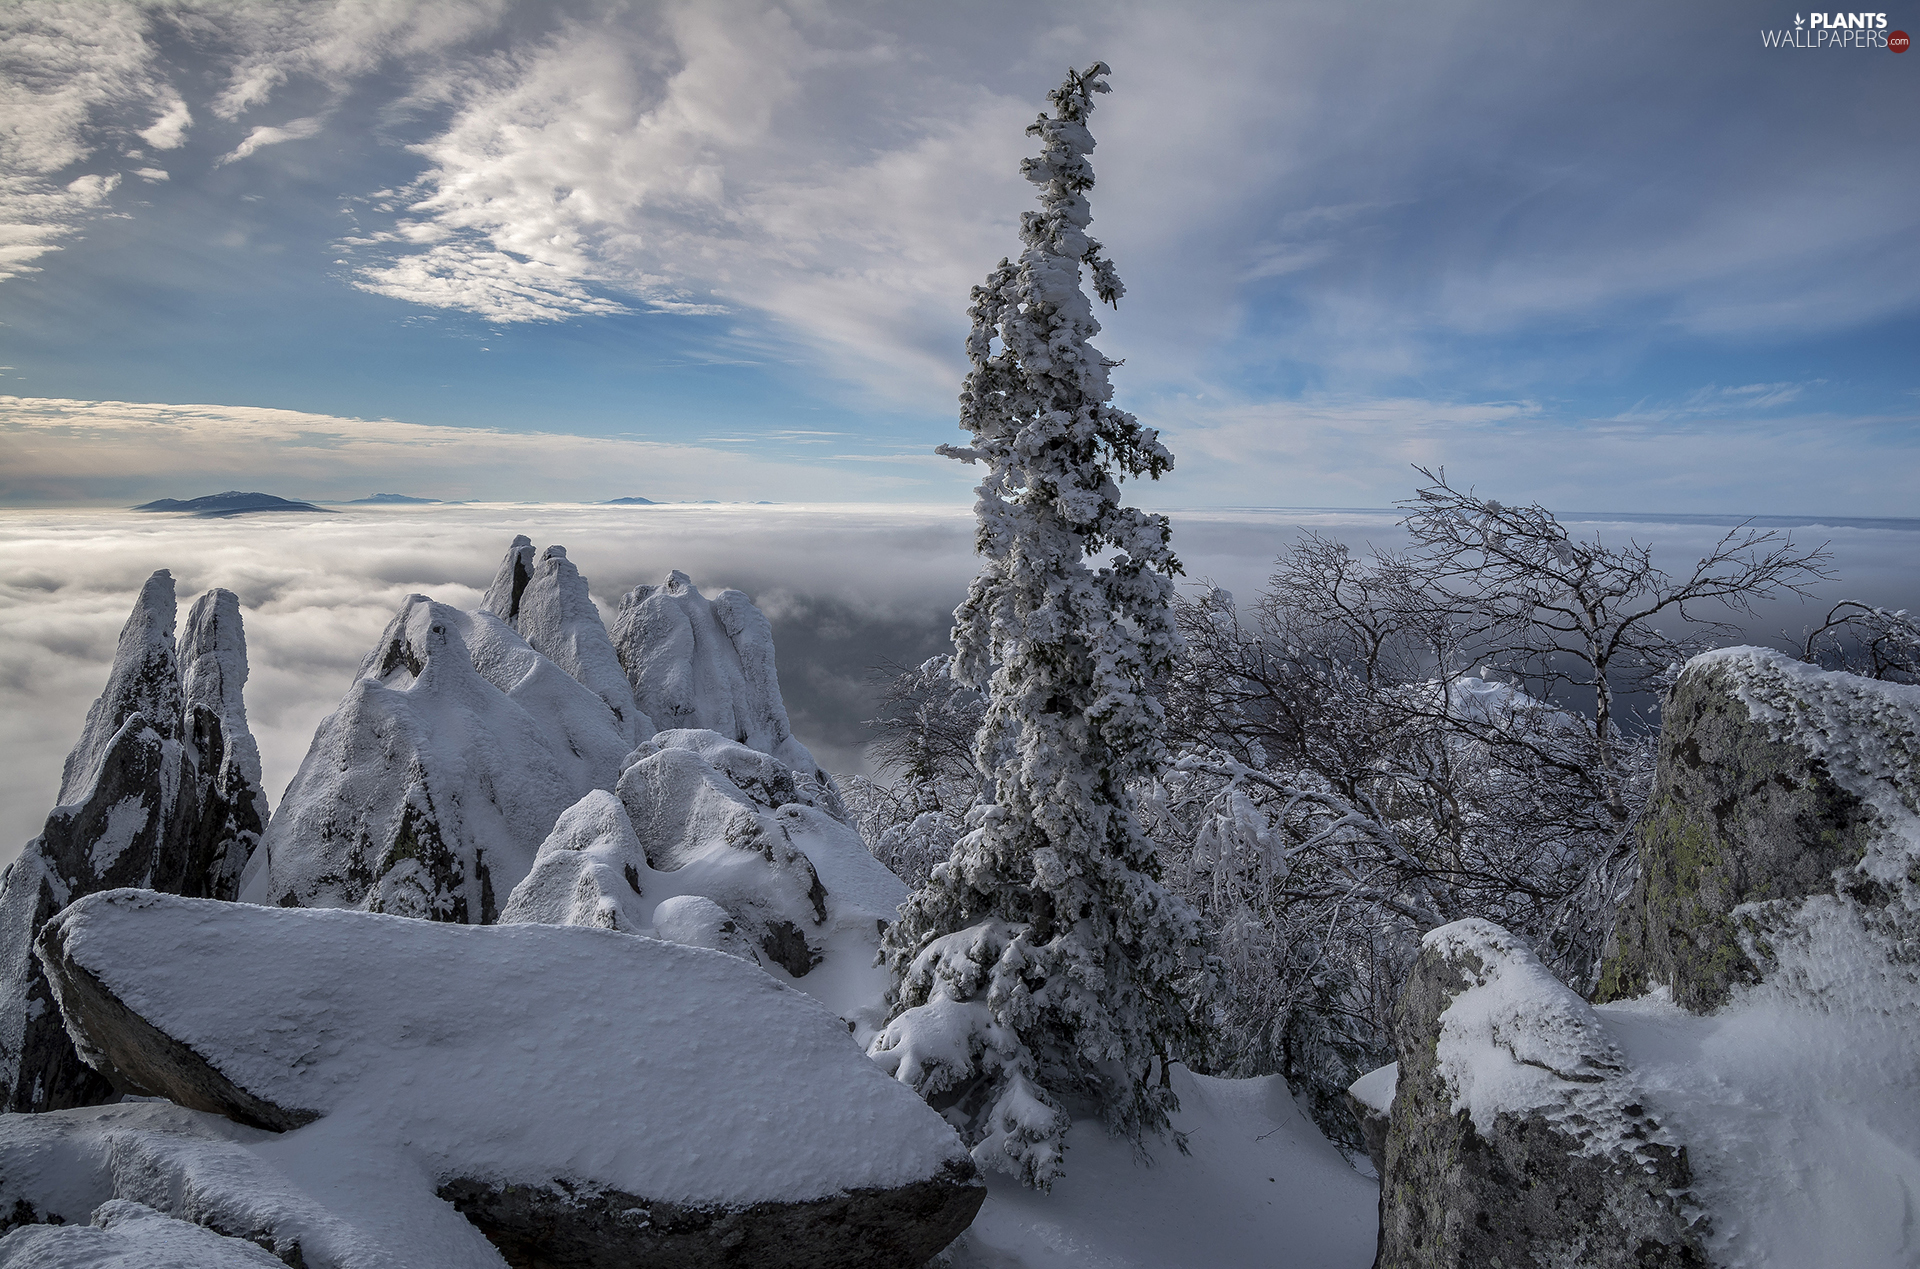 viewes, Mountains, winter, rocks, Fog, trees